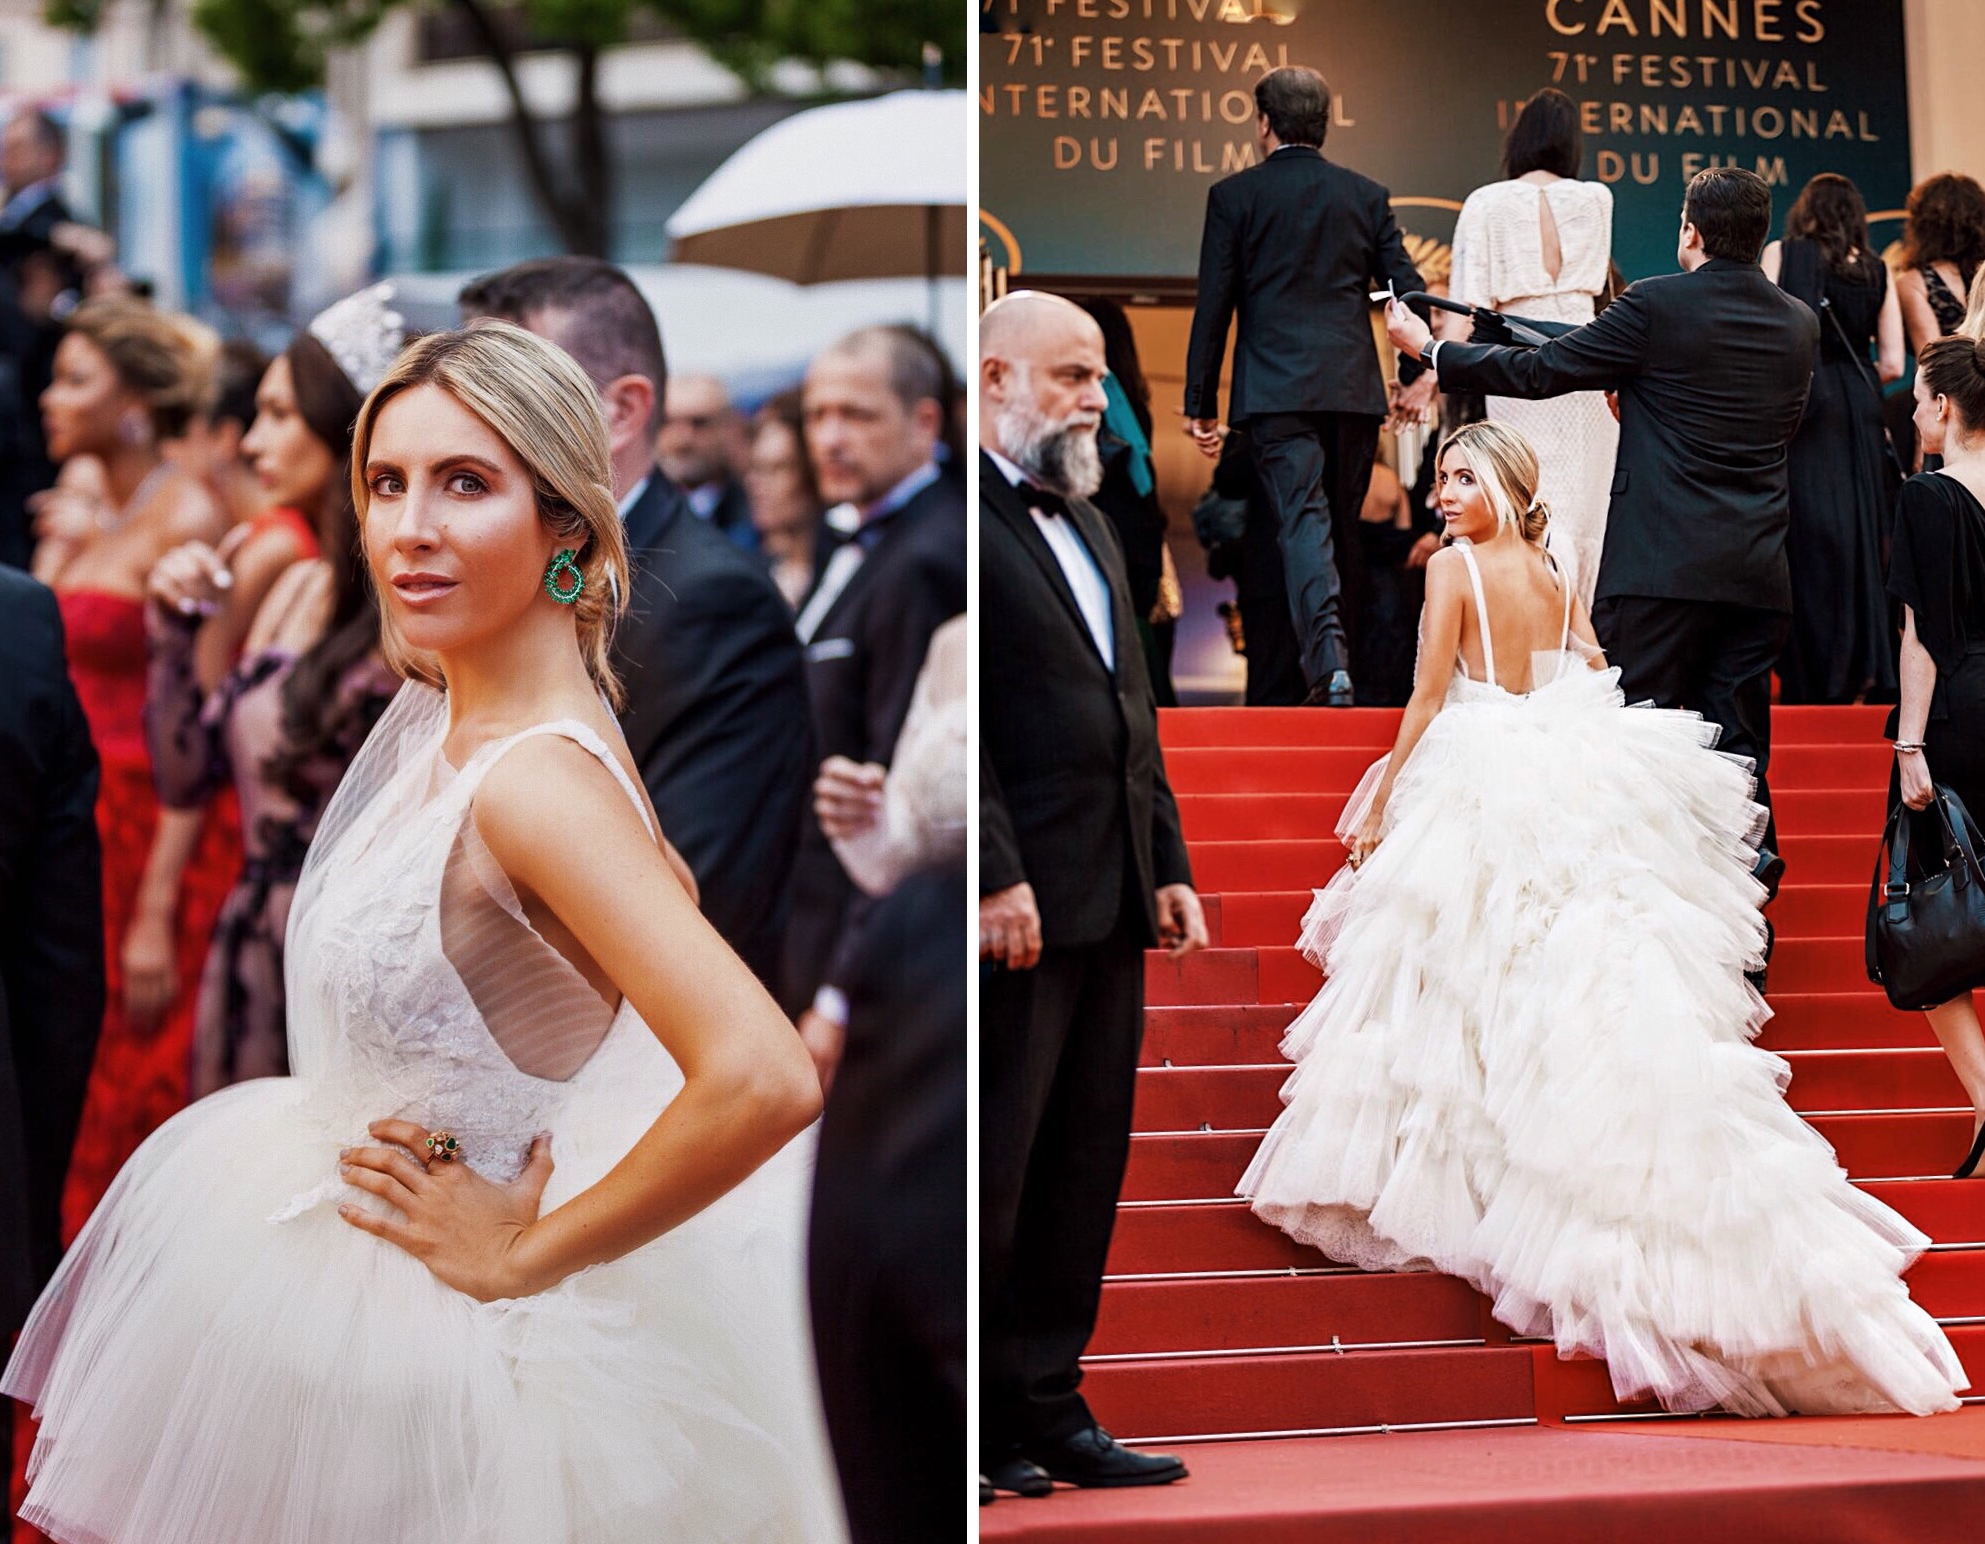 Cannes-Film-Festival-2018-Monica-Sors